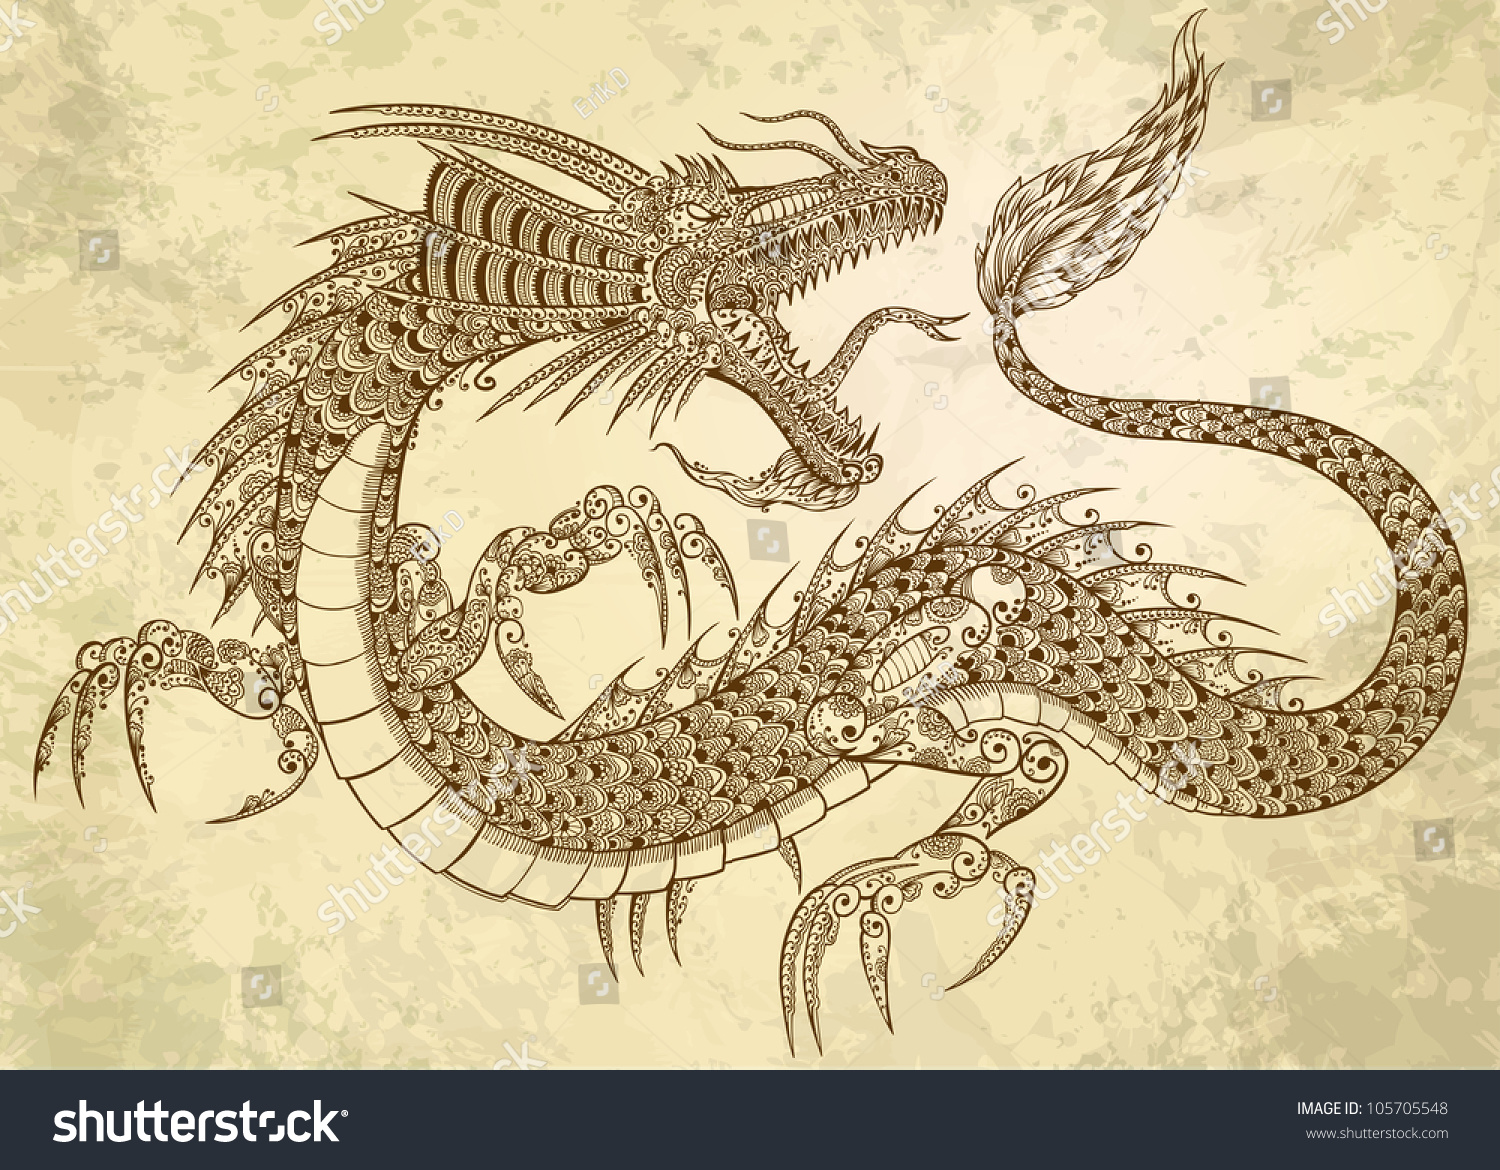 Henna tattoo dragon doodle sketch tribal stock vector for Henna tattoo art